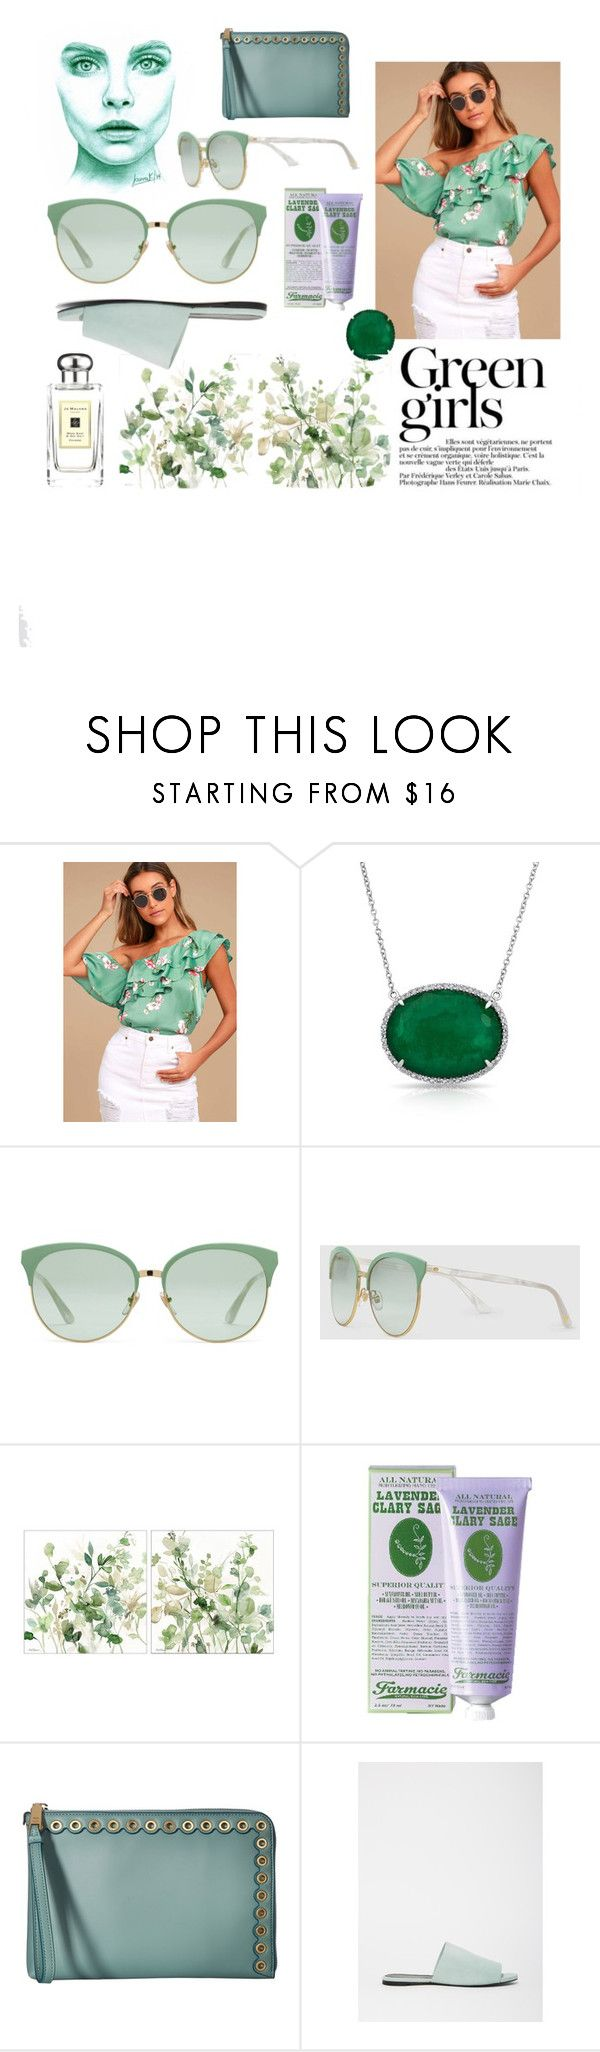 """""""Green Girls 💋💋💋"""" by numeangeleyes ❤ liked on Polyvore featuring Green Girls, LULUS, Anne Sisteron, Gucci, Soap & Paper Factory, Ivanka Trump, Robert Clergerie, Jo Malone and emeraldgreen"""